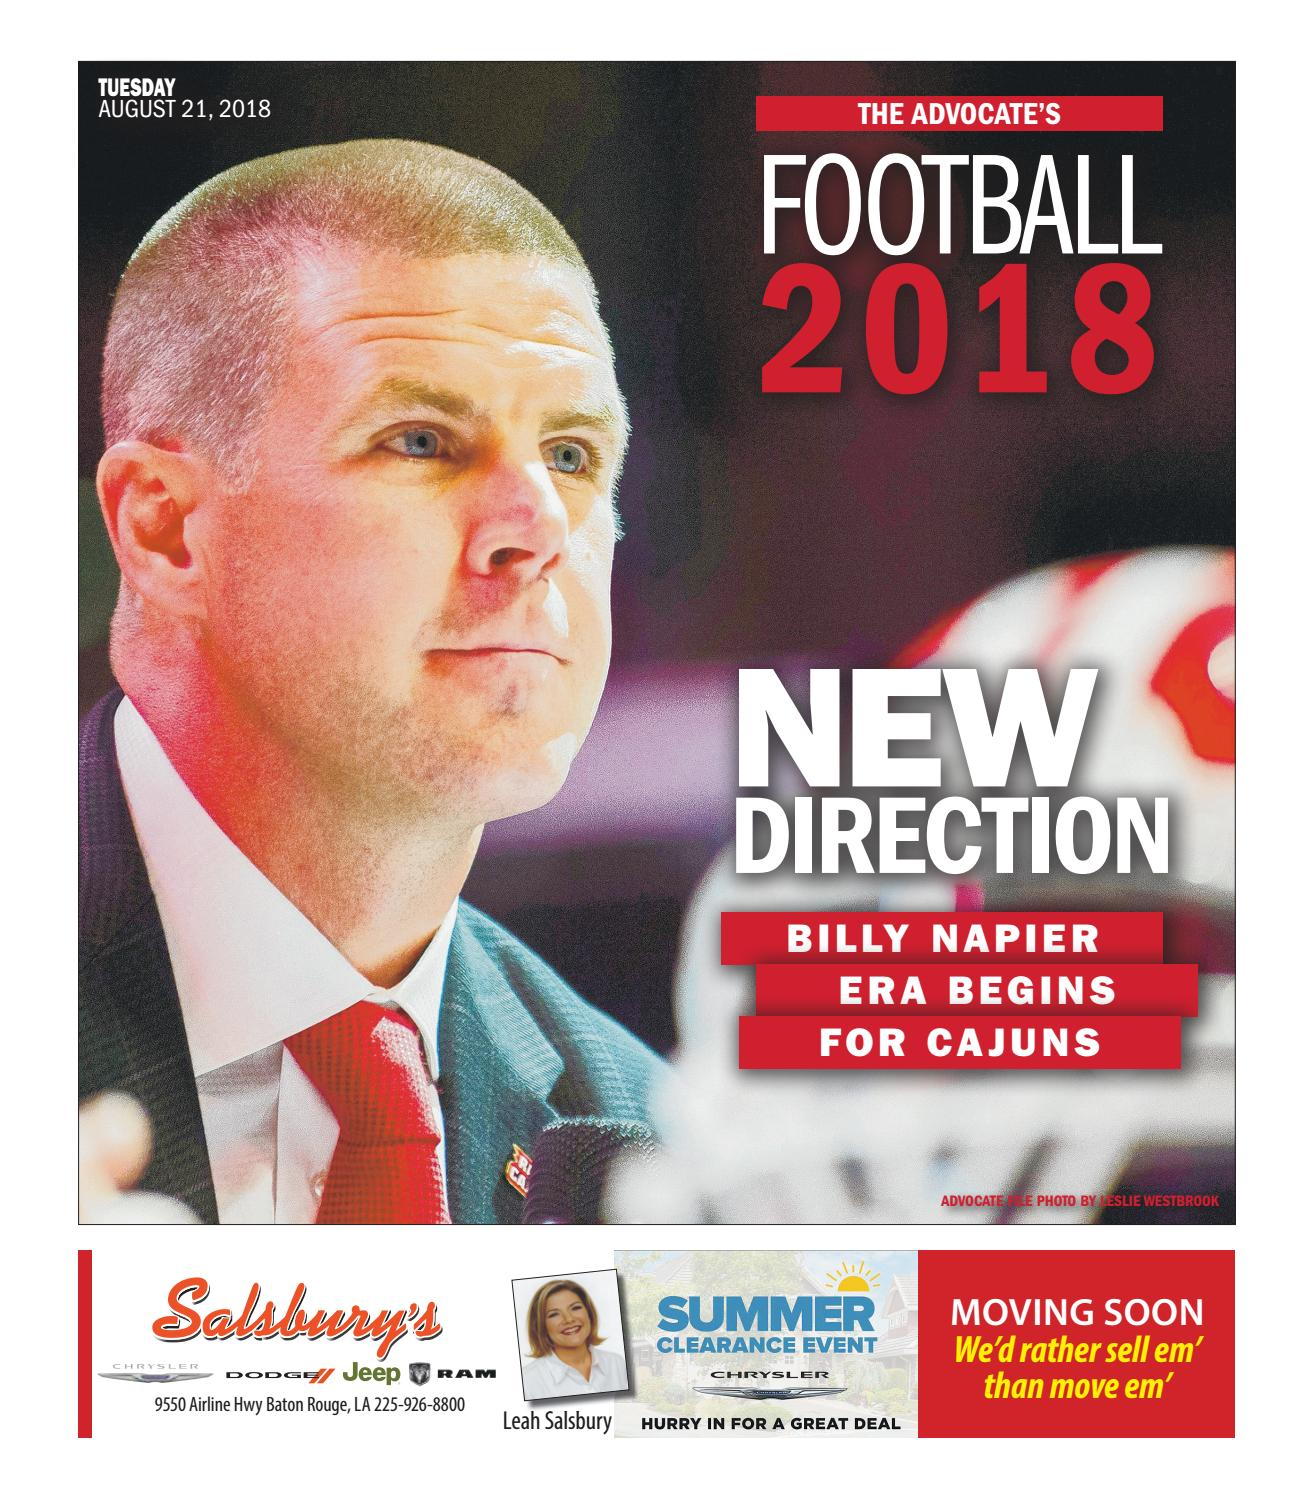 c6f9530d7 Football 2018: New Direction by The Advocate - issuu